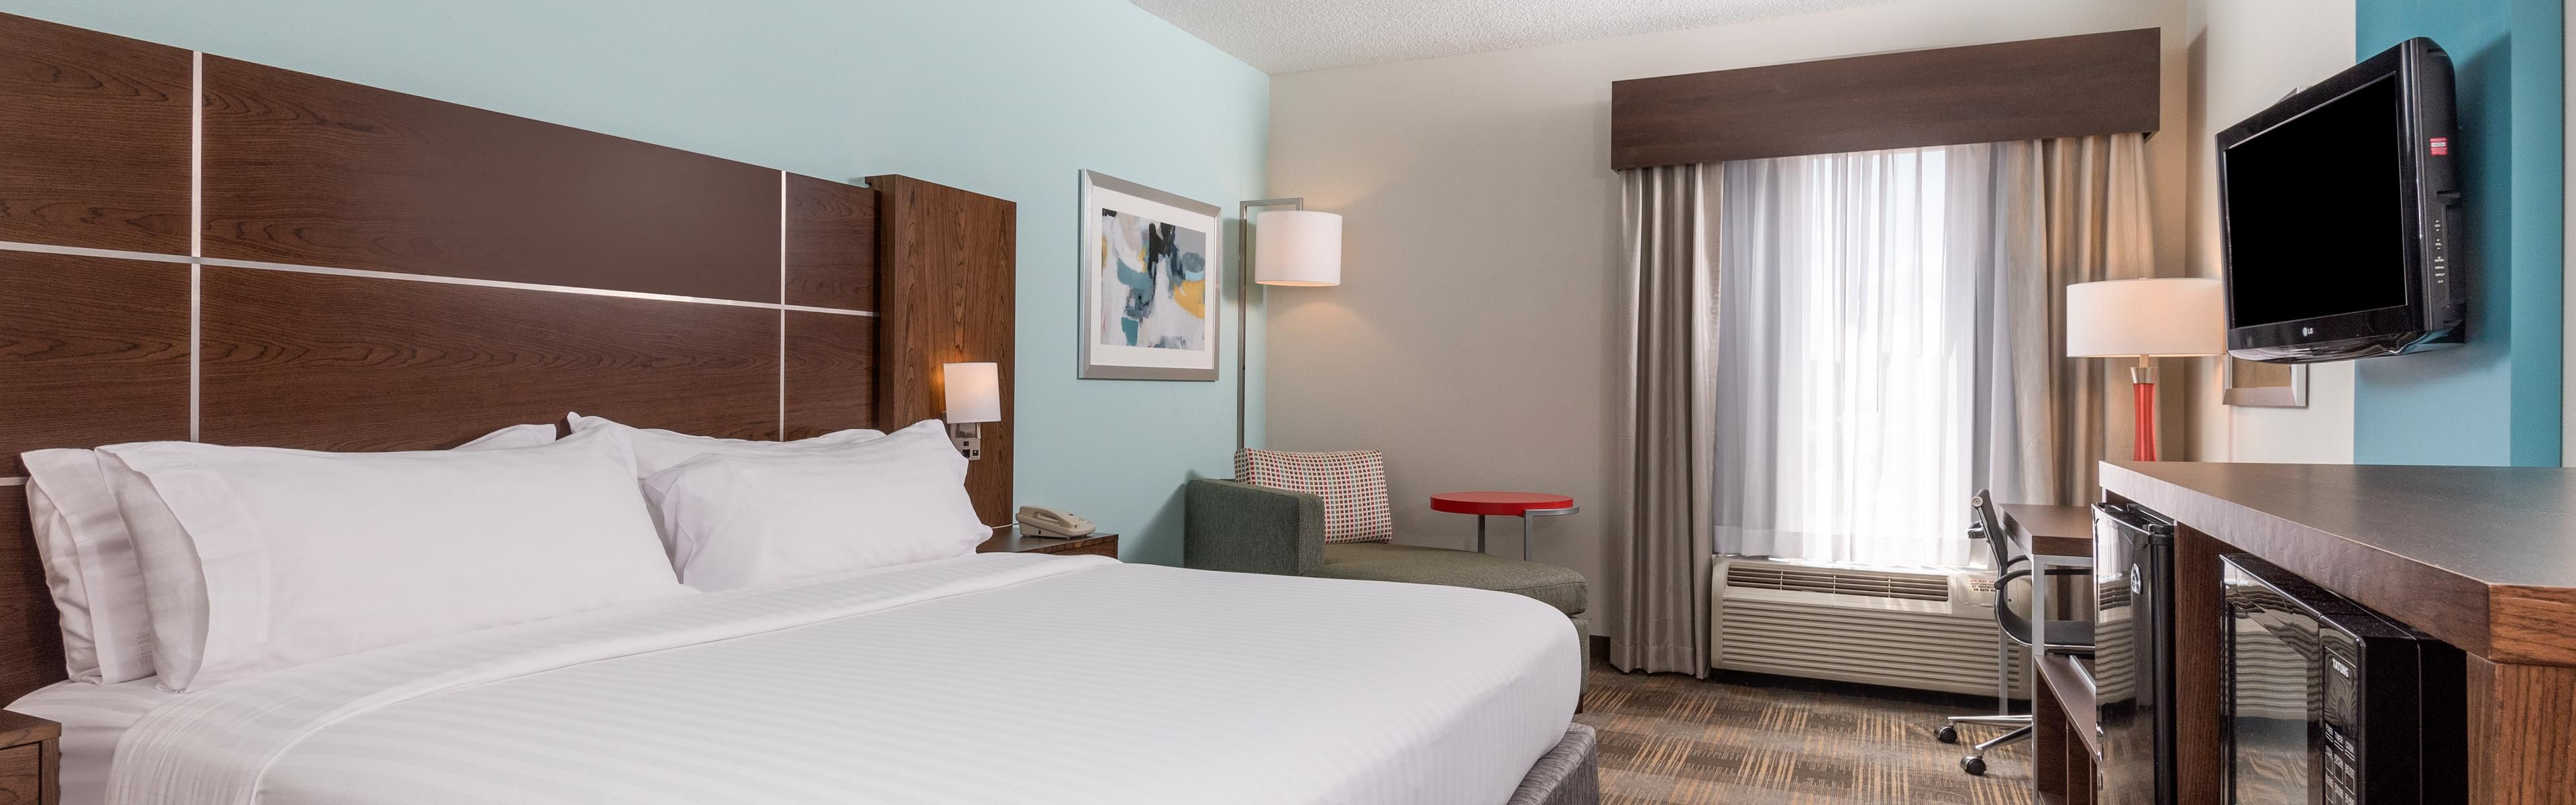 Holiday Inn Express & Suites Grenada image 1